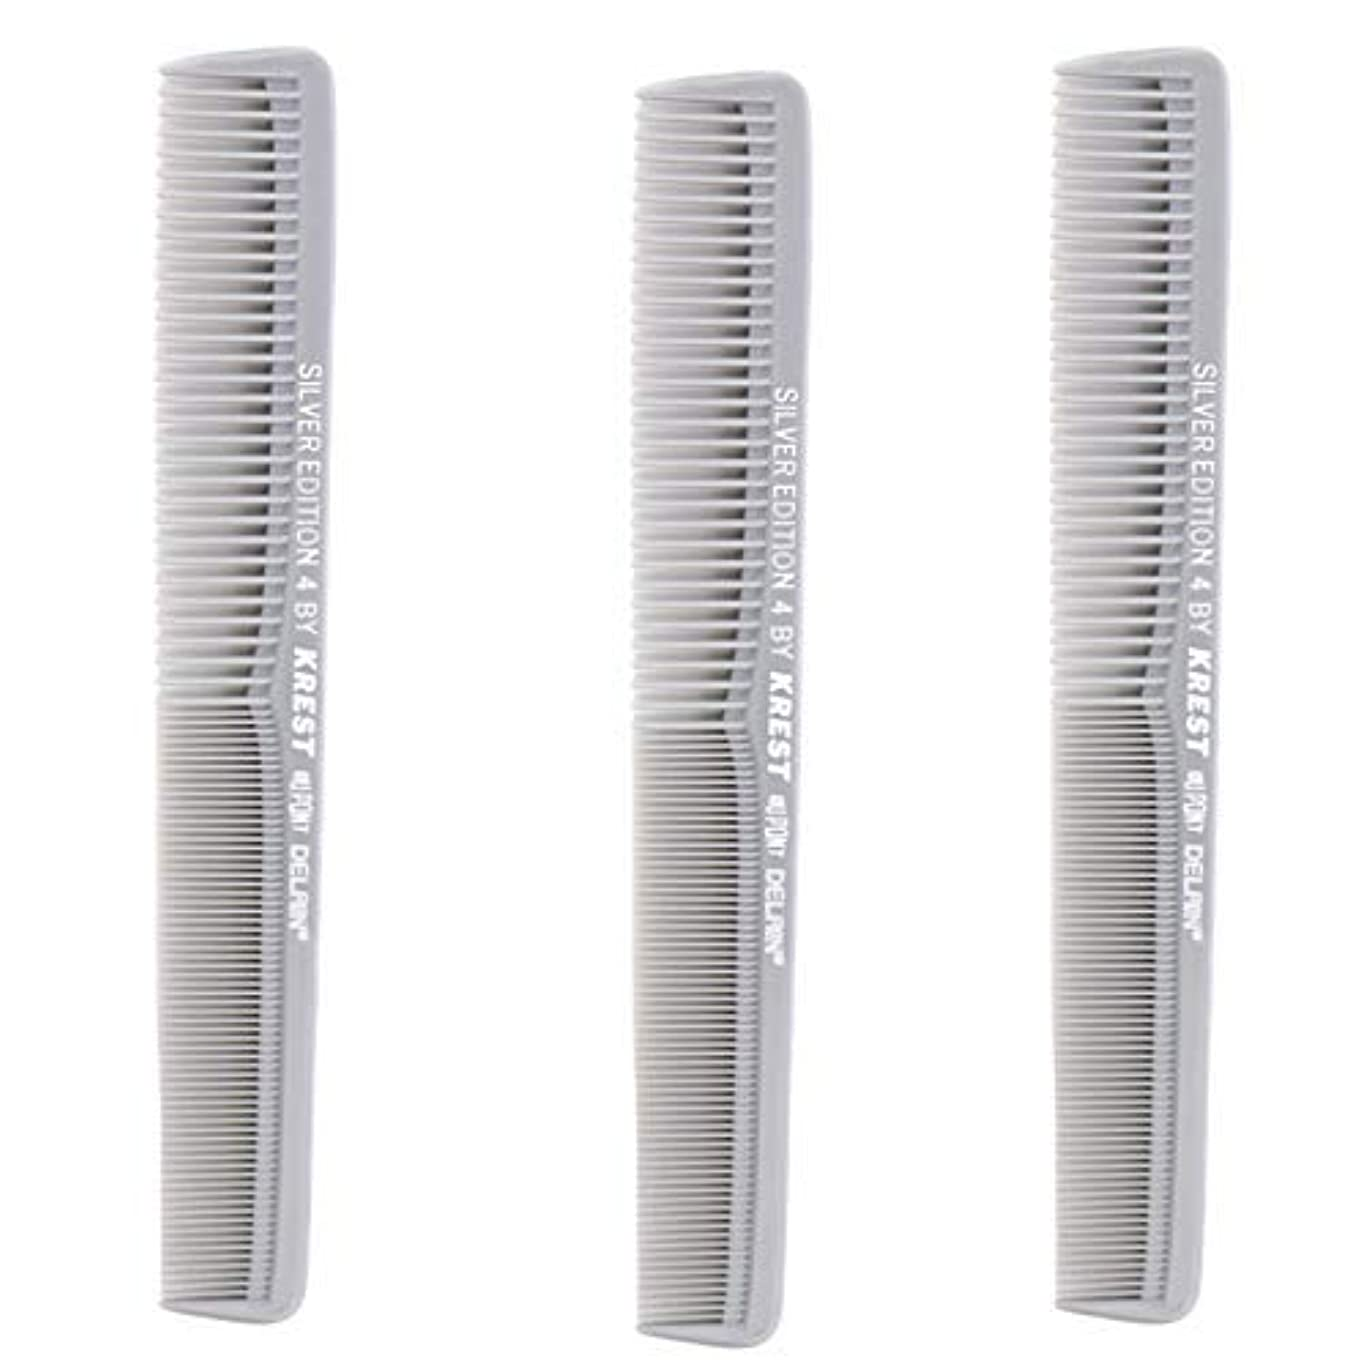 ゴージャス拮抗利得Krest Comb 7 In. Silver Edition Heat Resistant All Purpose Hair Comb Model #4 [並行輸入品]